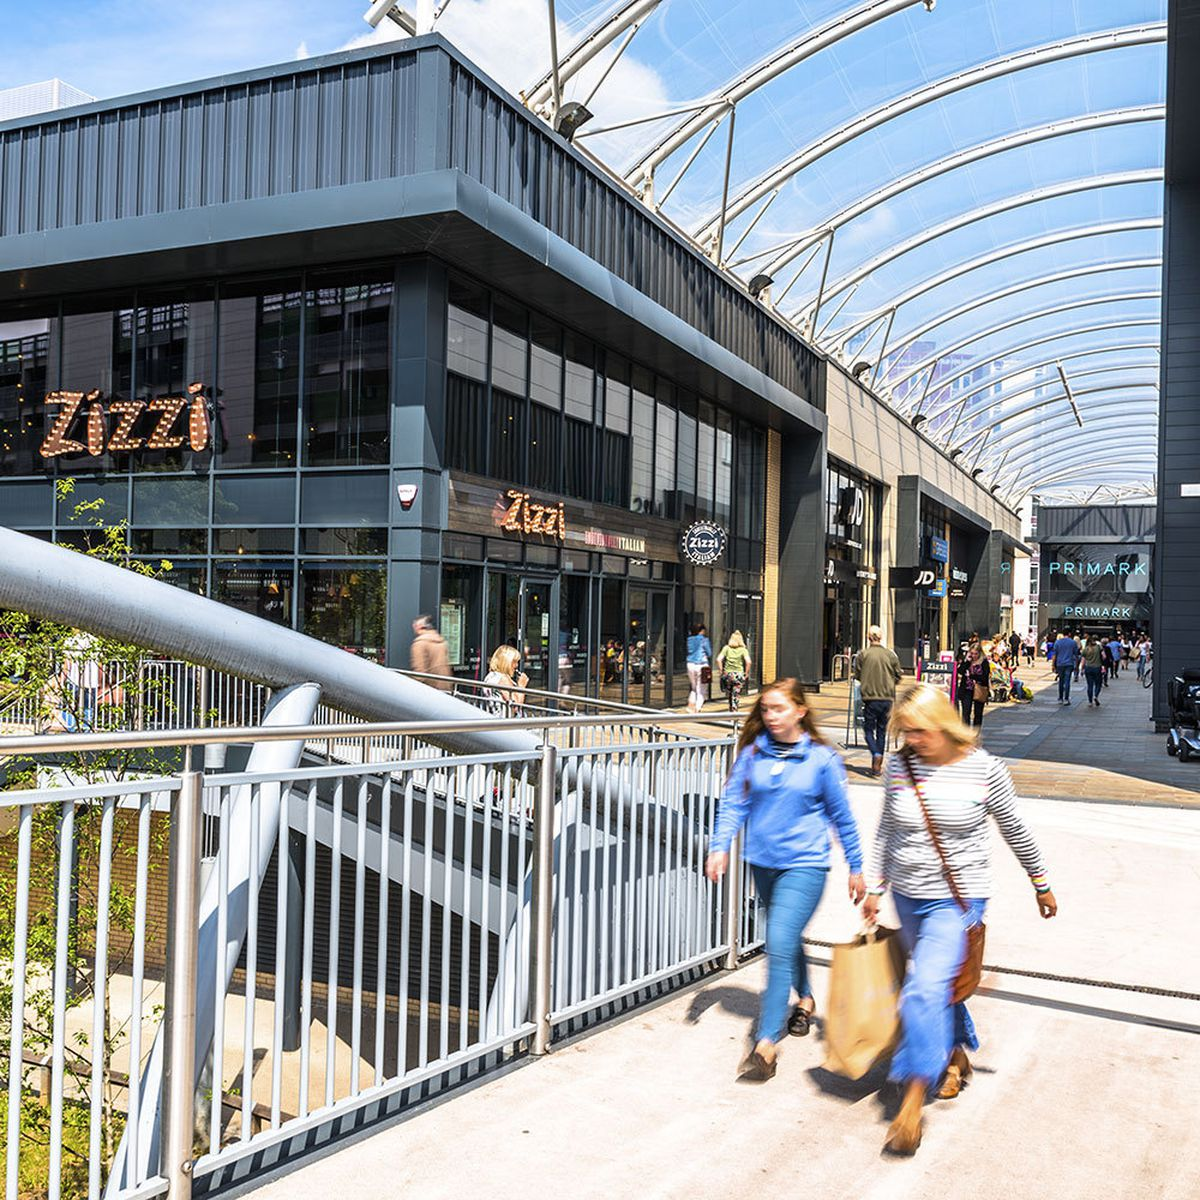 Stafford is showing how shopping destinations can adapt